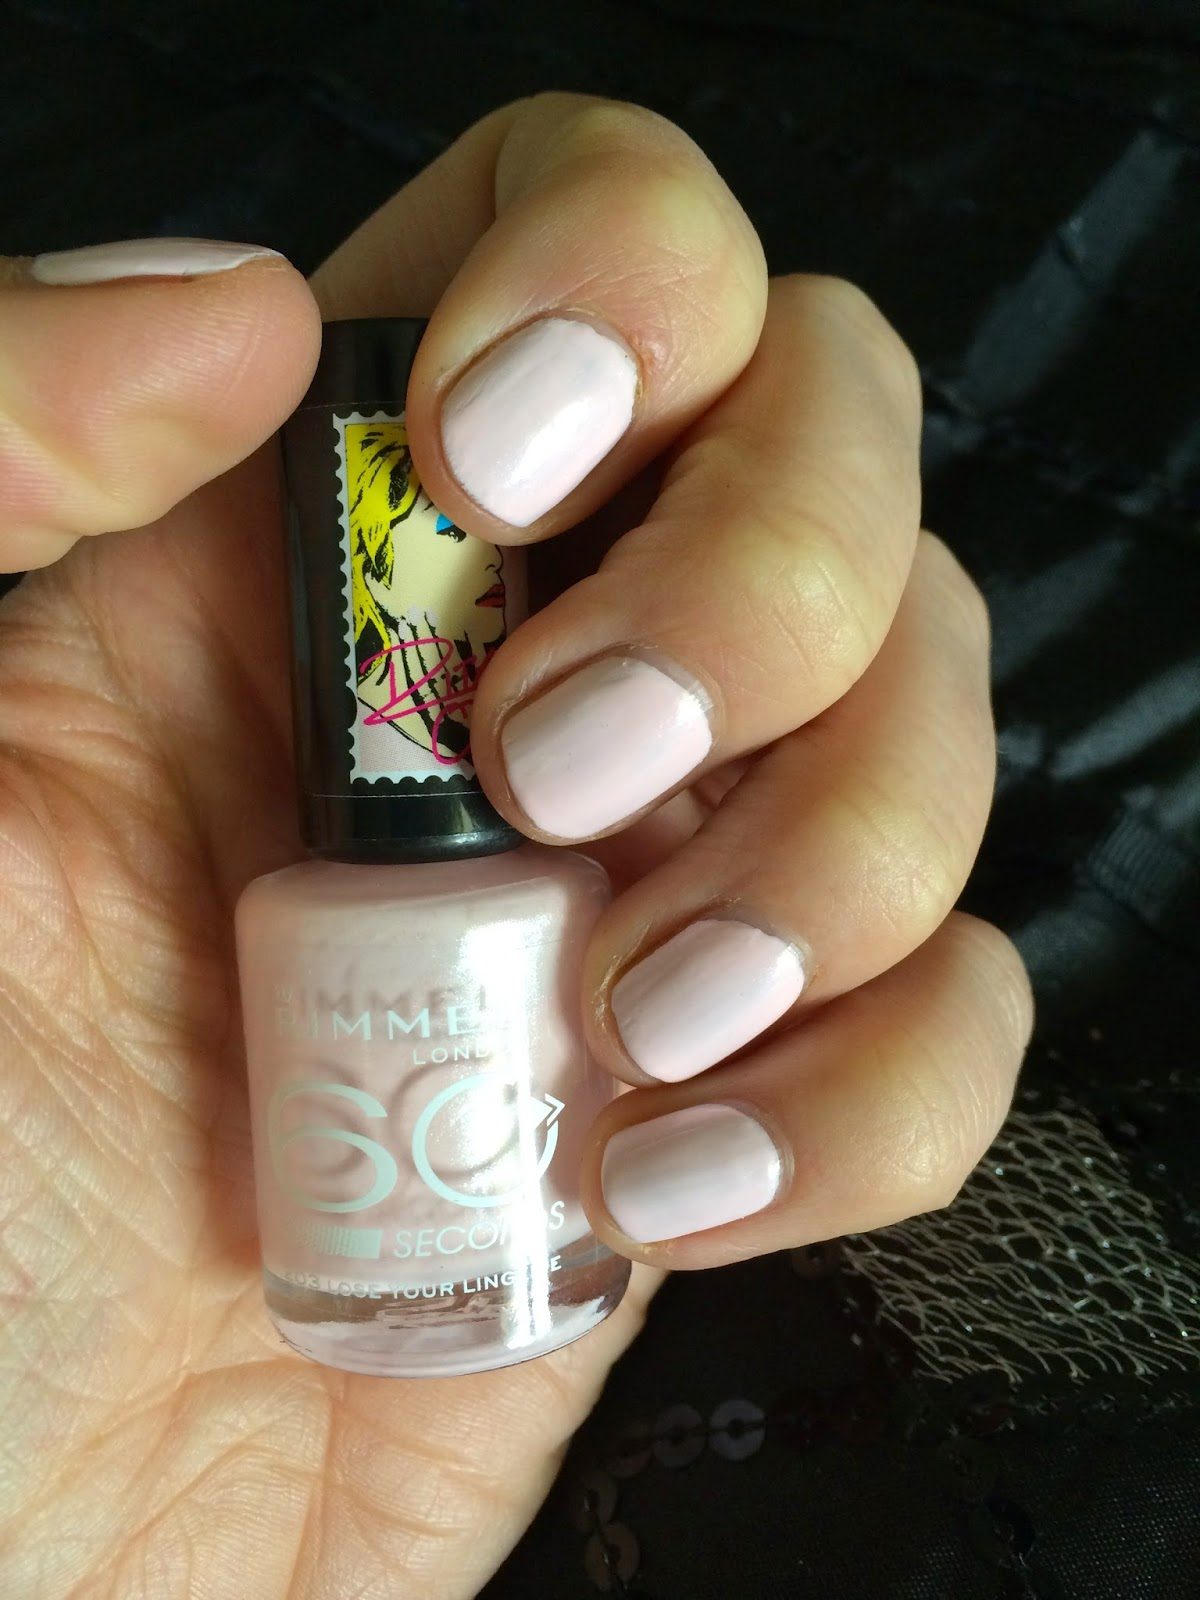 It Is A Lovely Pearlised Pink Very Light I Love Polishes Like This Especially If They Have That Hint Of Sheen In Them